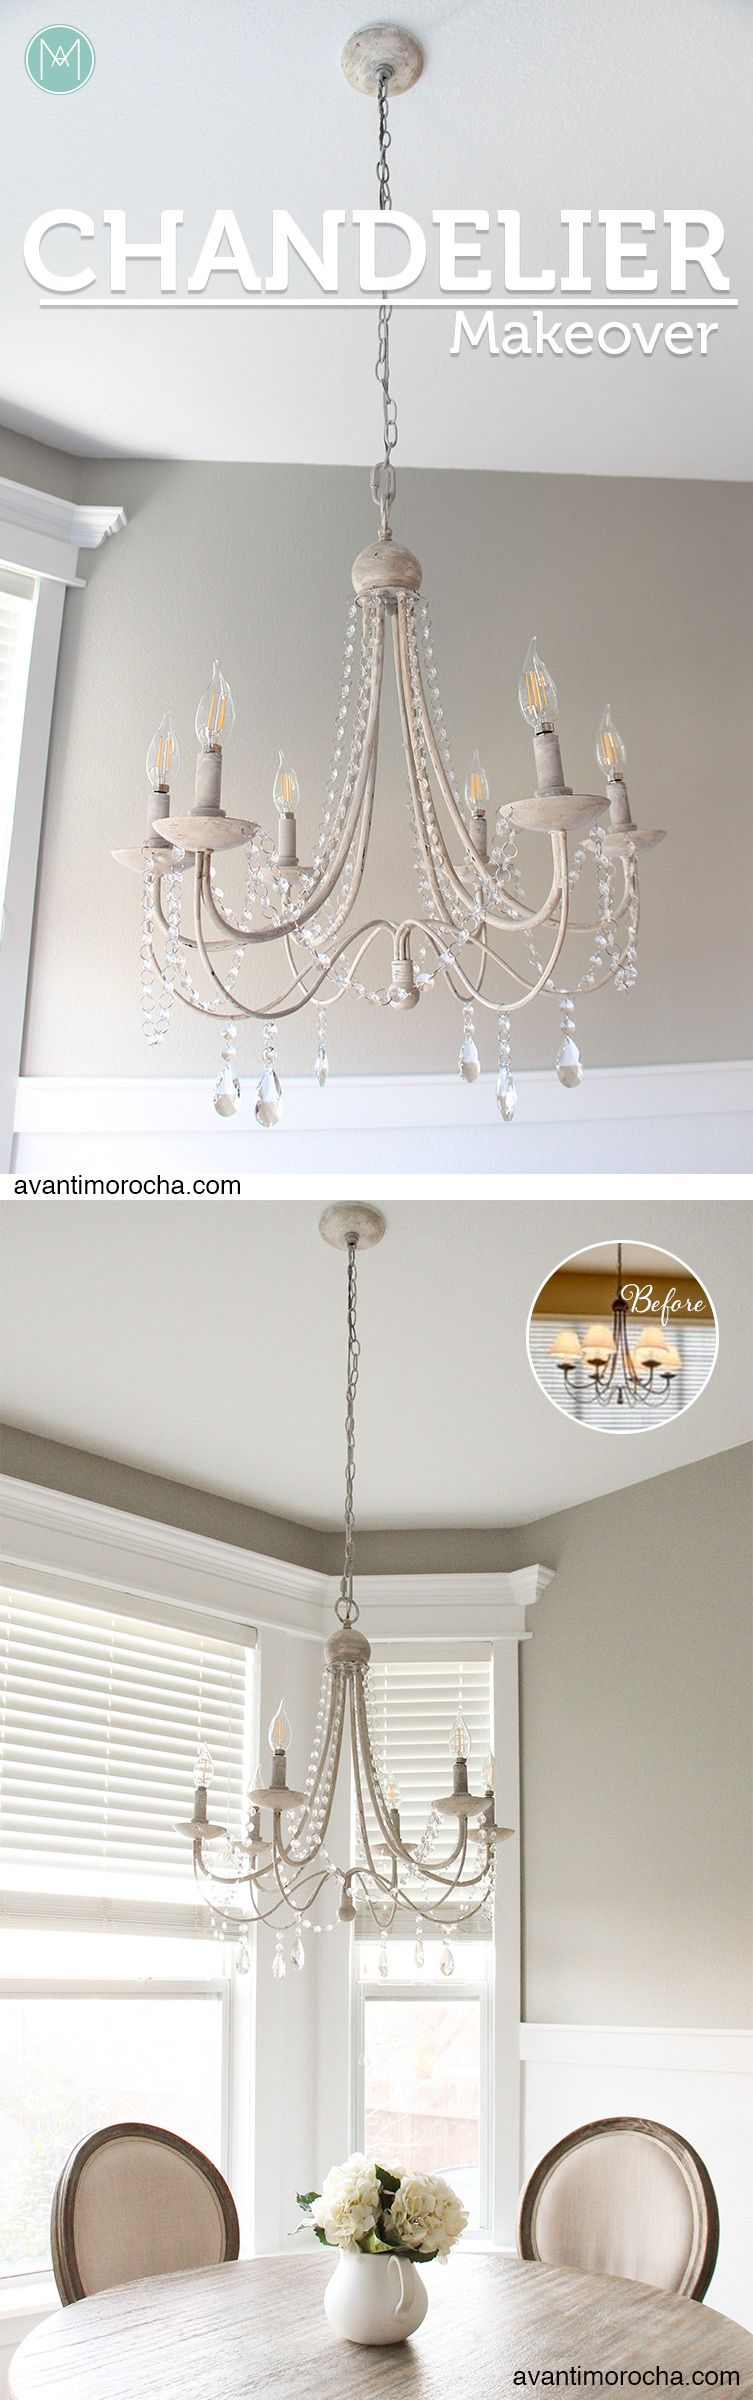 Master makeover a diy chandelier transformation diy chandelier master makeover a diy chandelier transformation diy chandelier chandeliers and blog arubaitofo Choice Image